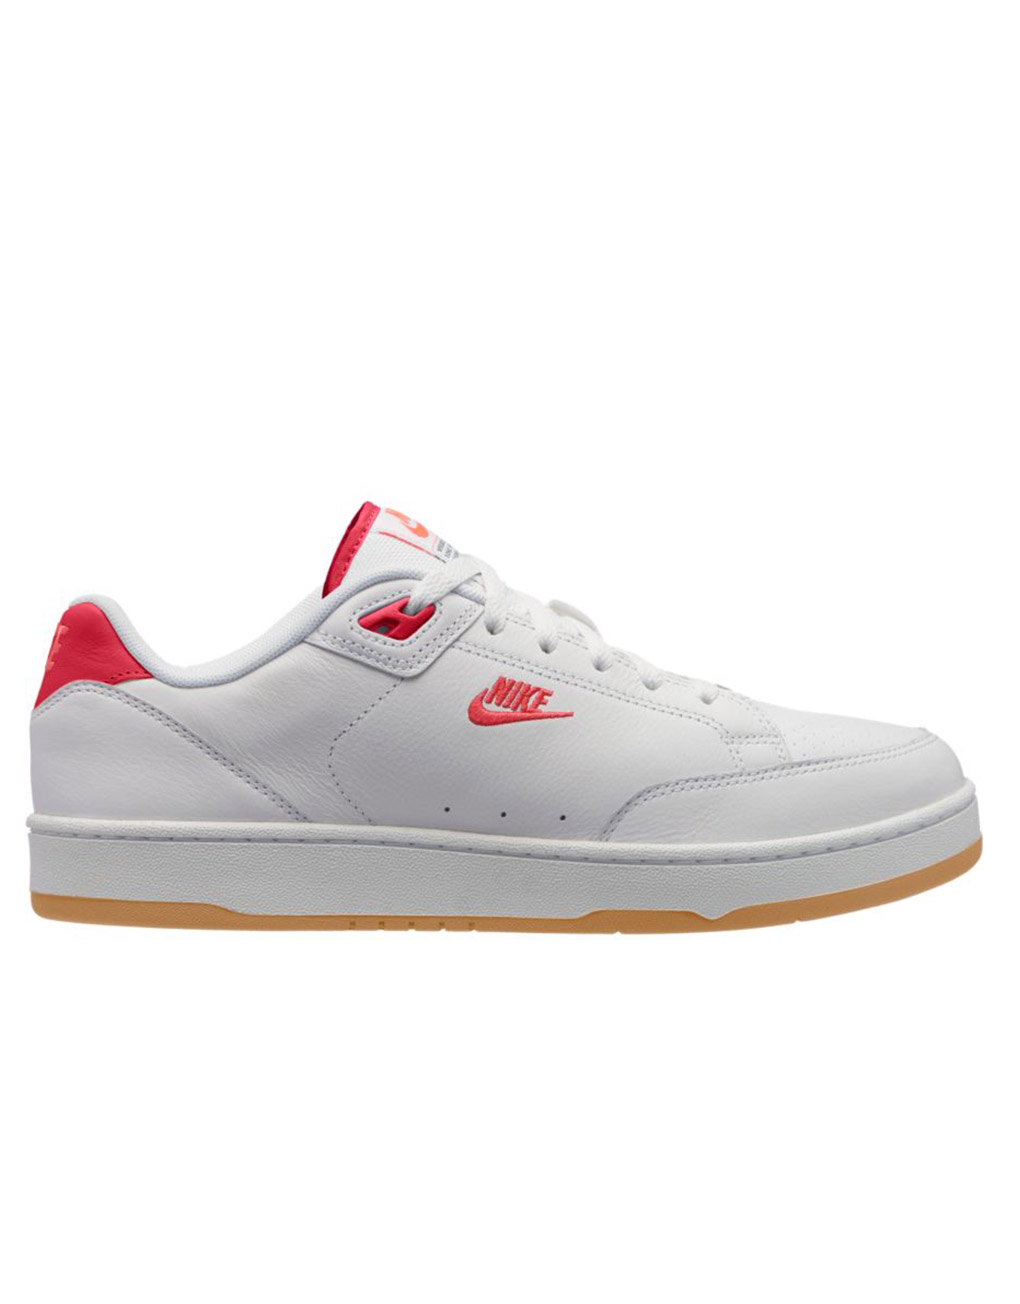 NIKE \u2013 GRANDSTAND II PREMIUM (White/University Red)